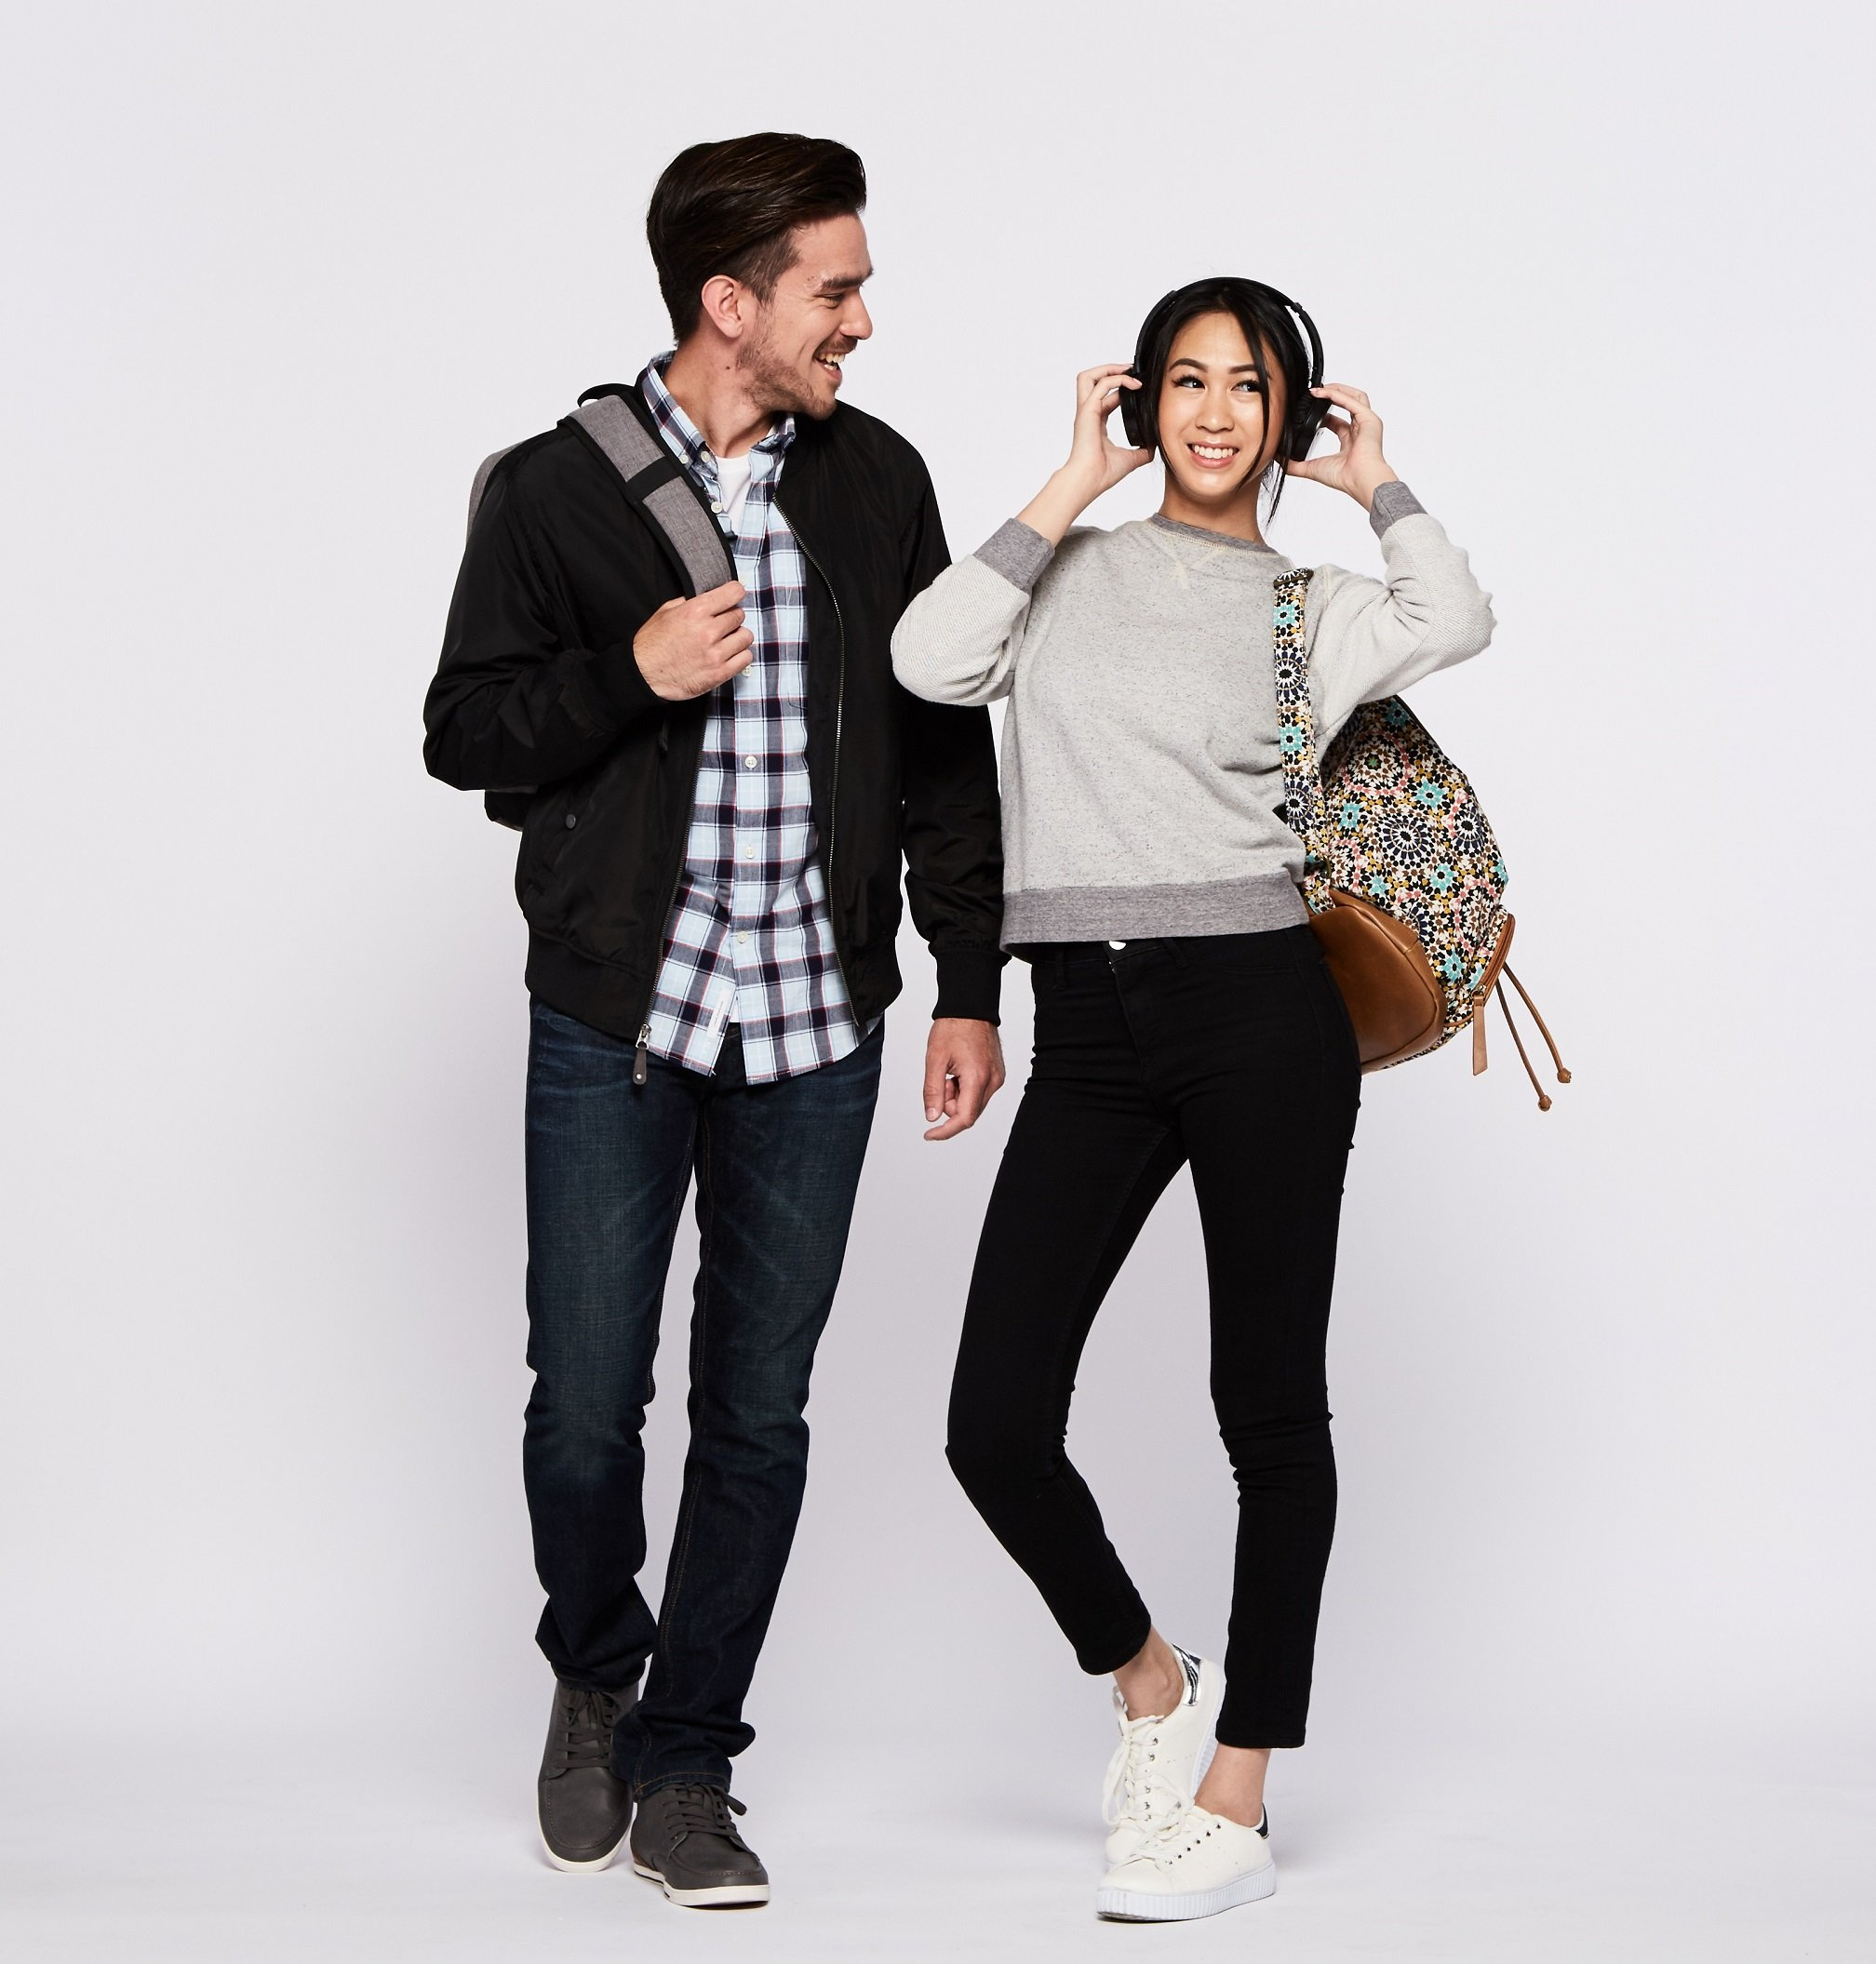 Cheerful college guy and girl carrying backpacks